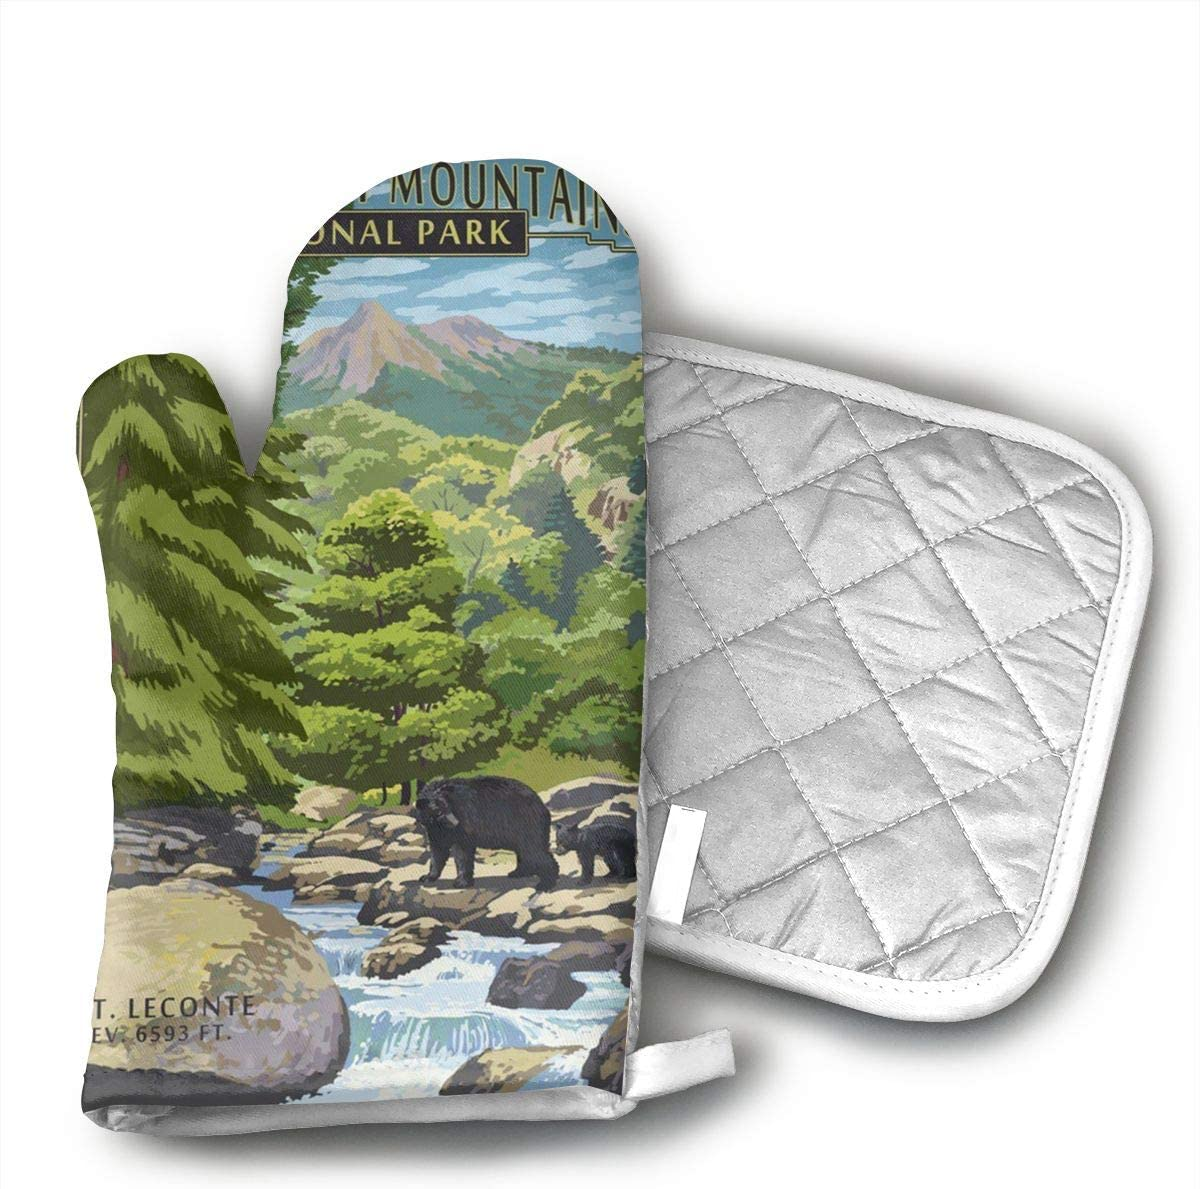 JFNNRUOP Leconte Creek and Mt. Leconte - Great Smoky Mountains National Park Oven Mitts,with Potholders Oven Gloves,Insulated Quilted Cotton Potholders